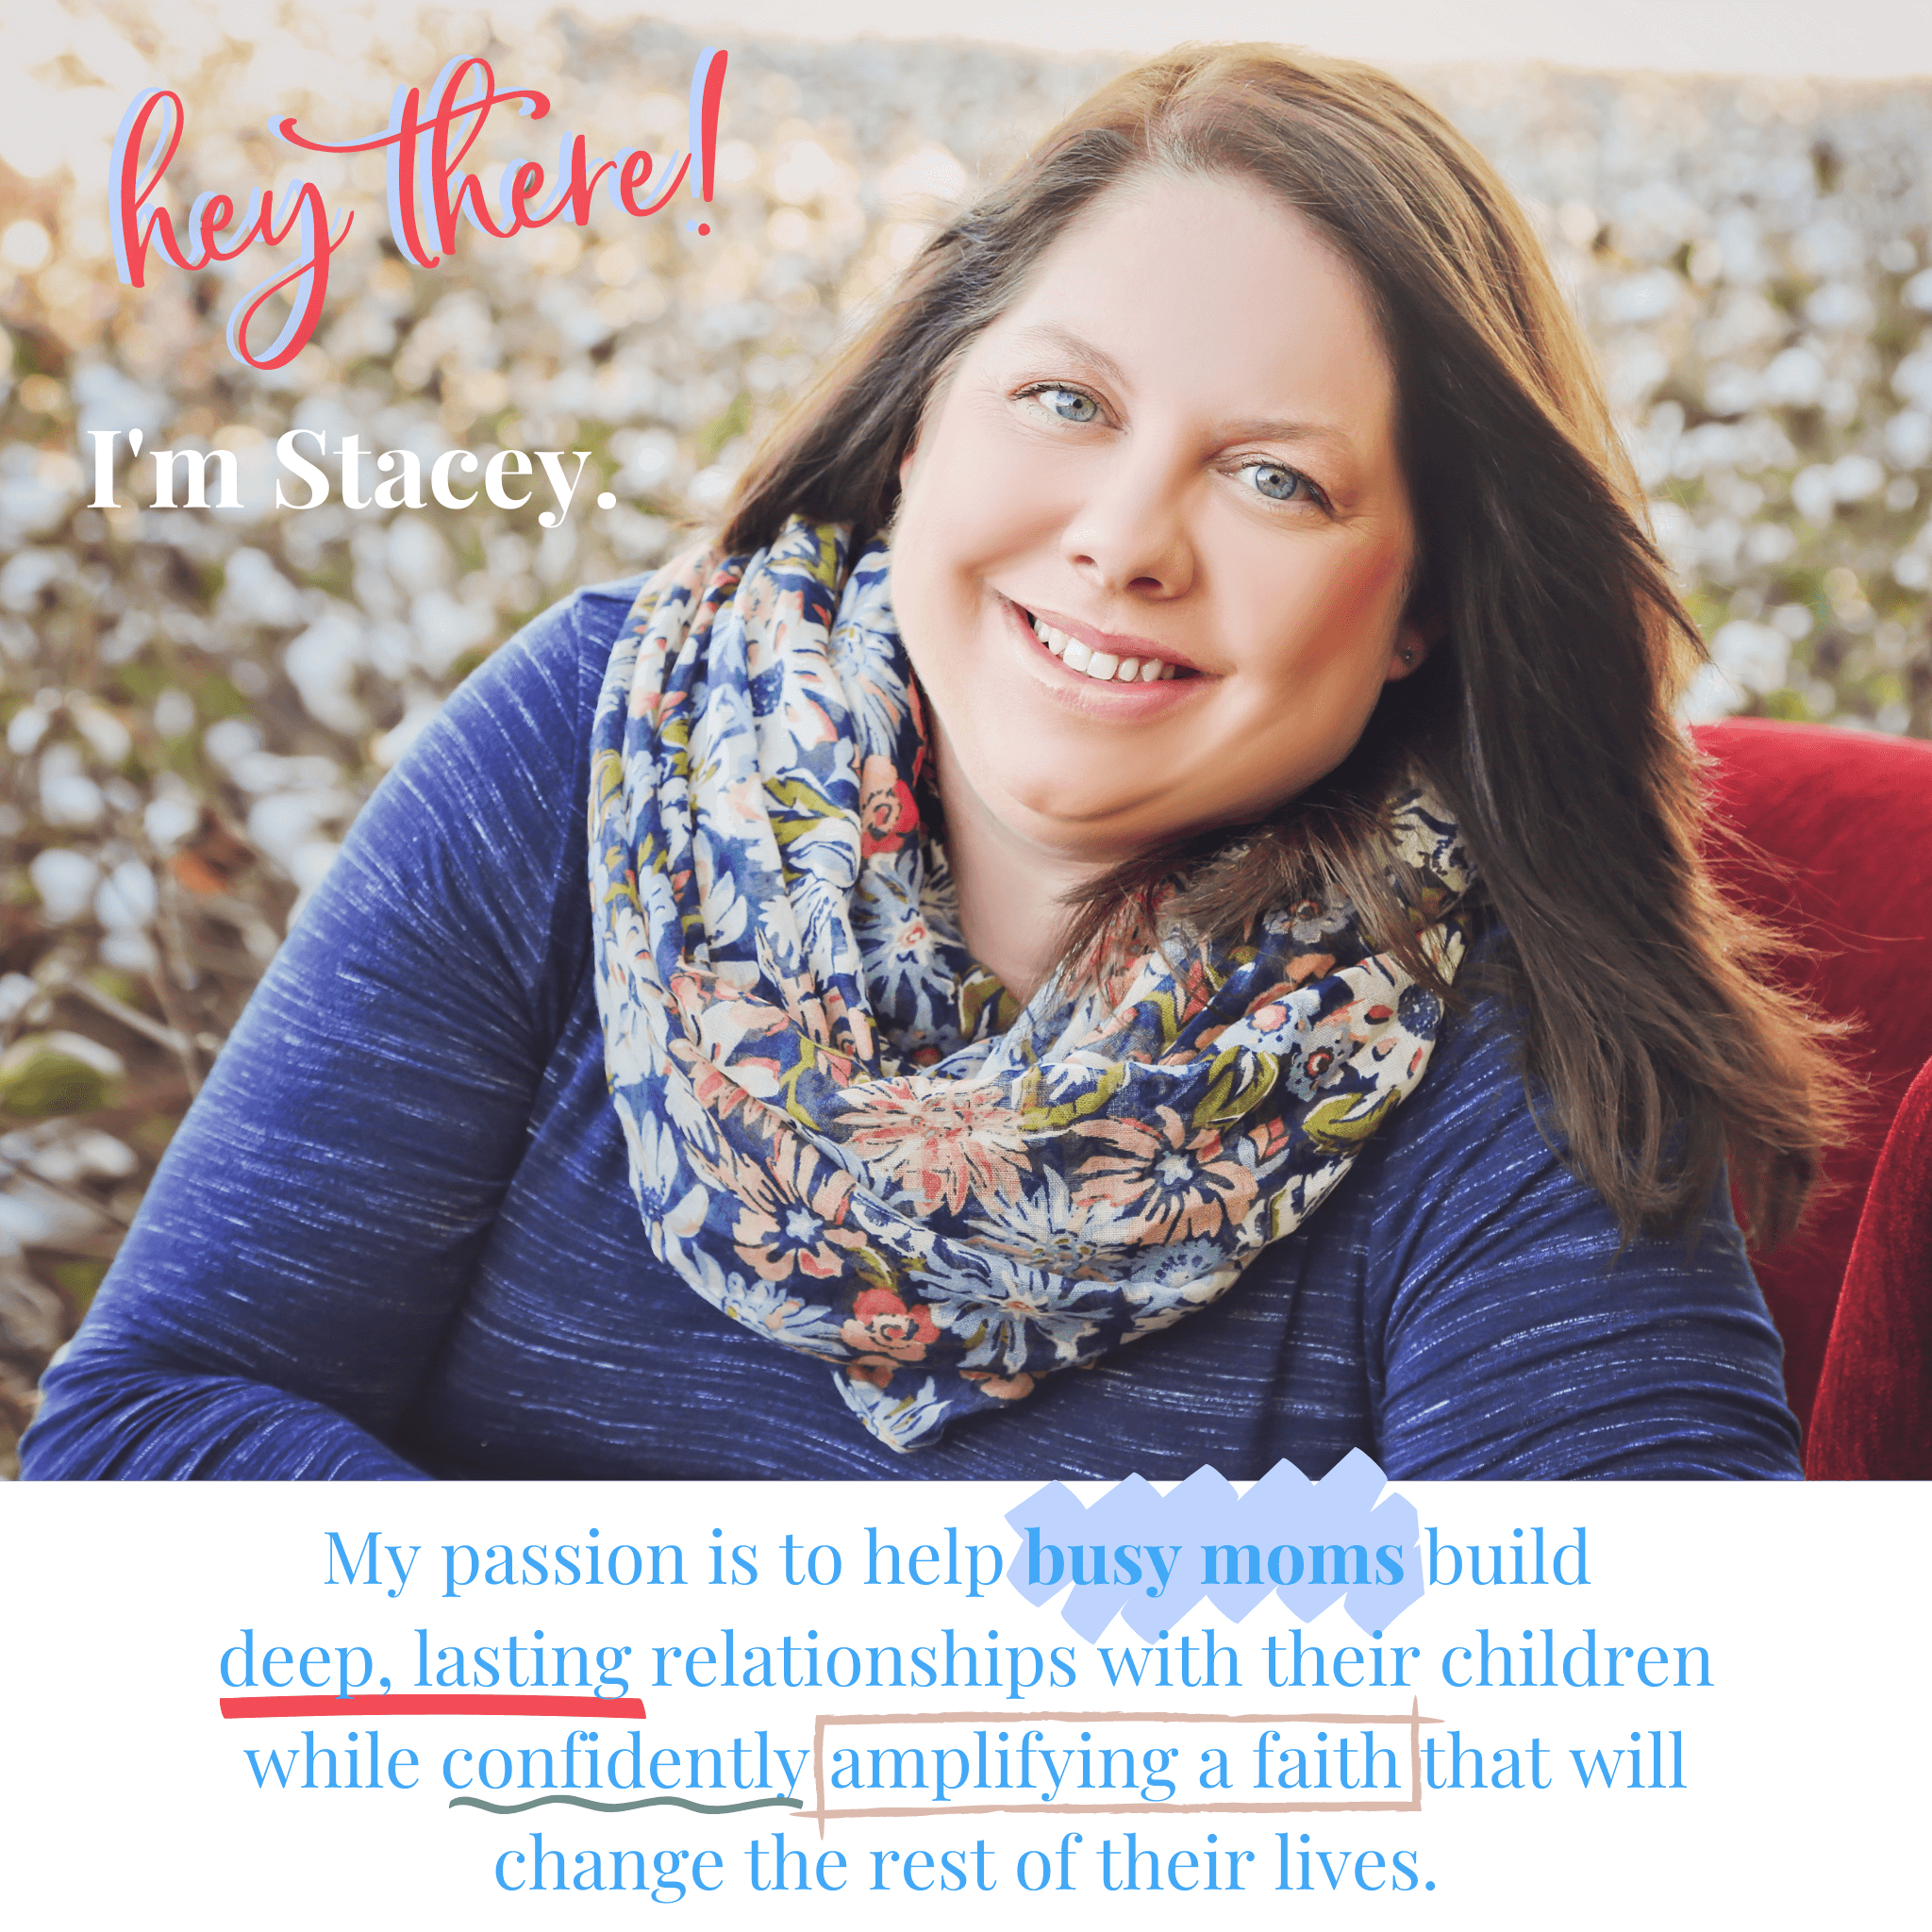 """Picture of Stacey Posey """"Hey there! I'm Stacey. My passion is to help busy moms build deep, lasting relationships with their children while confidently amplifying a faith that will change the rest of their lives."""""""